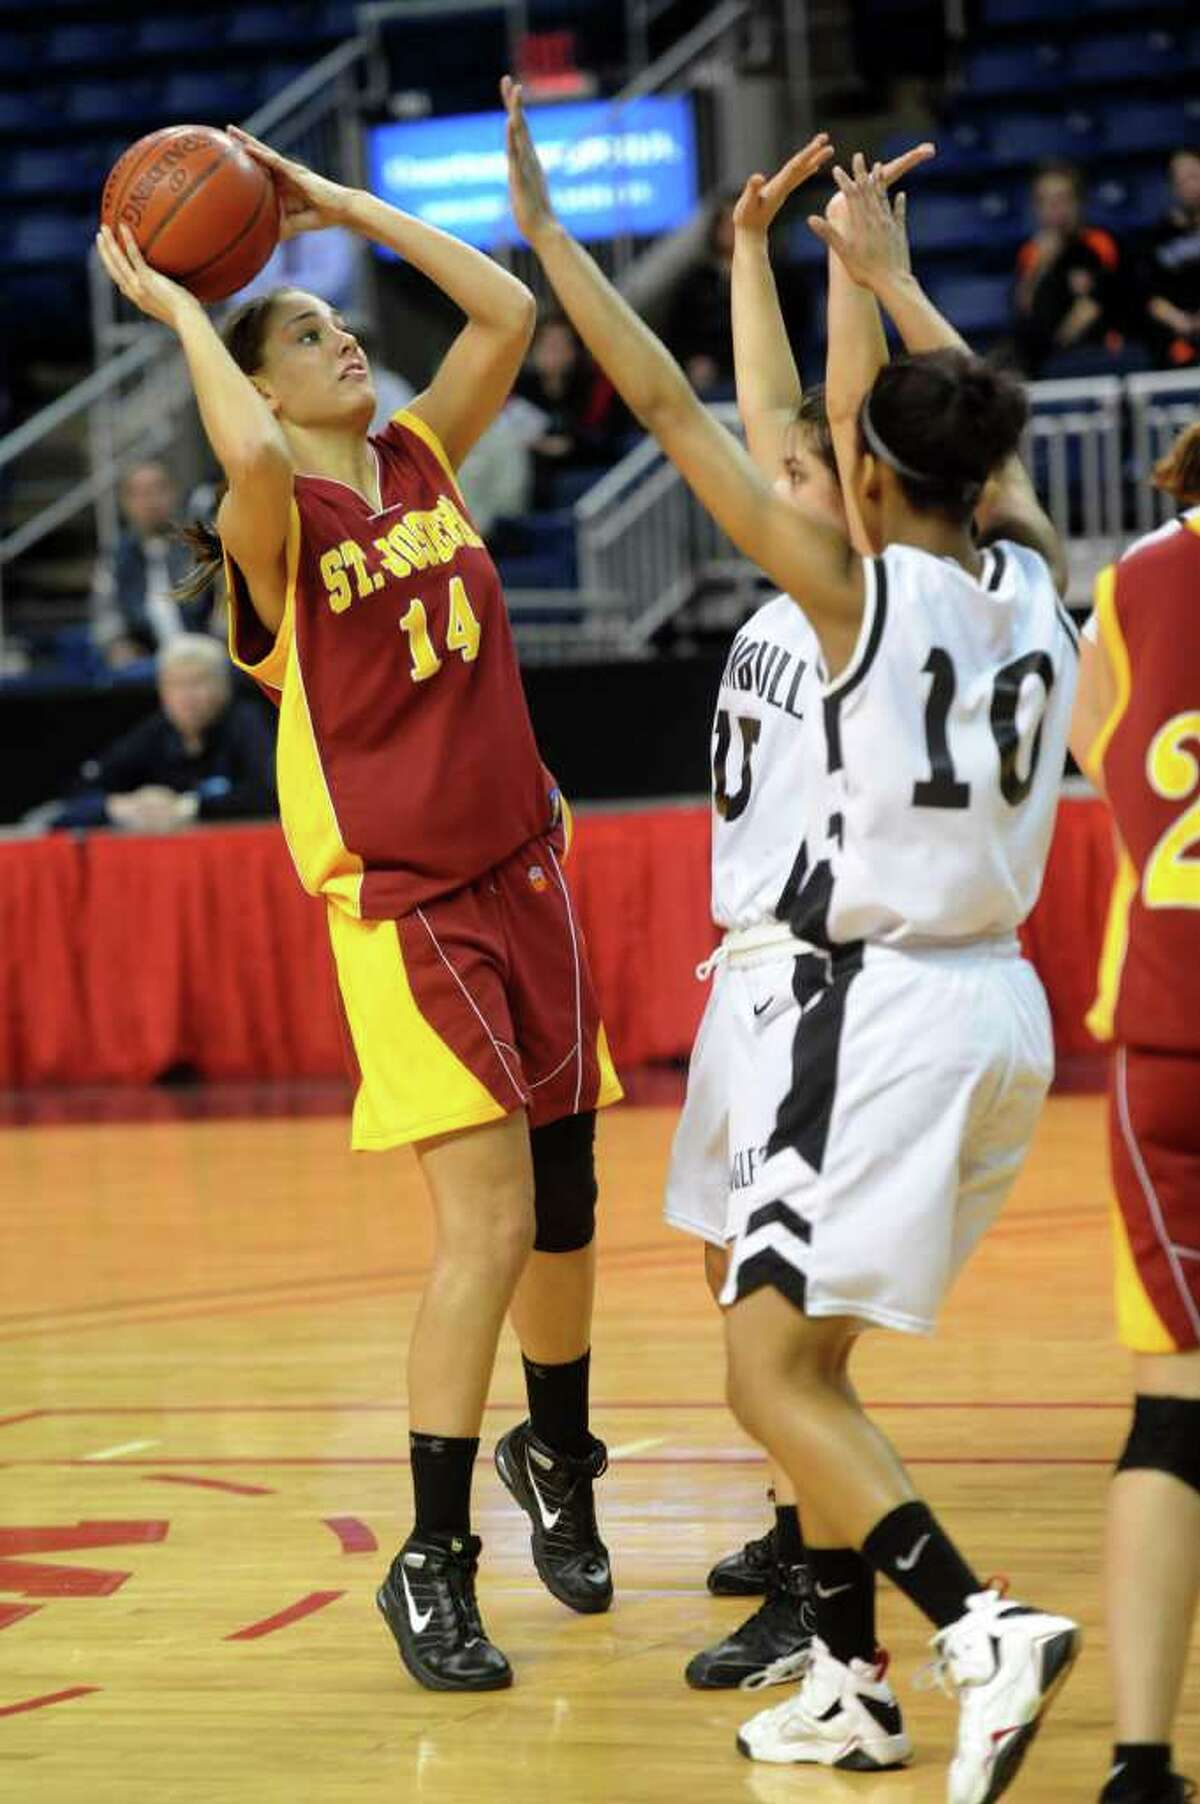 St. Joseph's Amaia Gristsko takes a shot during Tuesday's FCIAC girls basketball semifinal game at the Webster Bank Arena at Harbor Yard on Feburary 22, 2011.